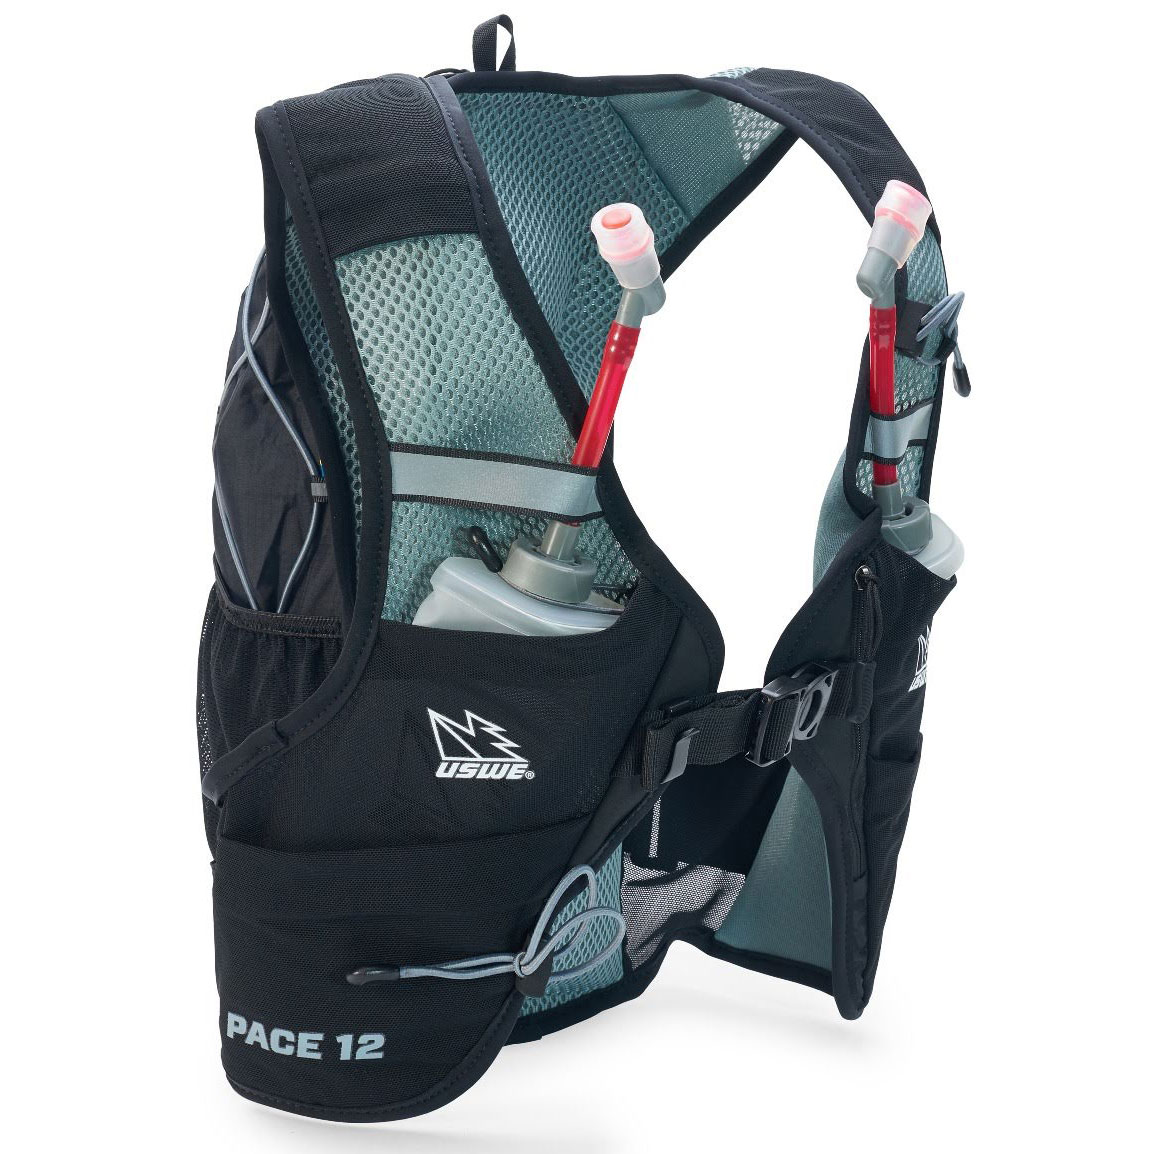 Picture of USWE Pace 12 Vest - black/grey